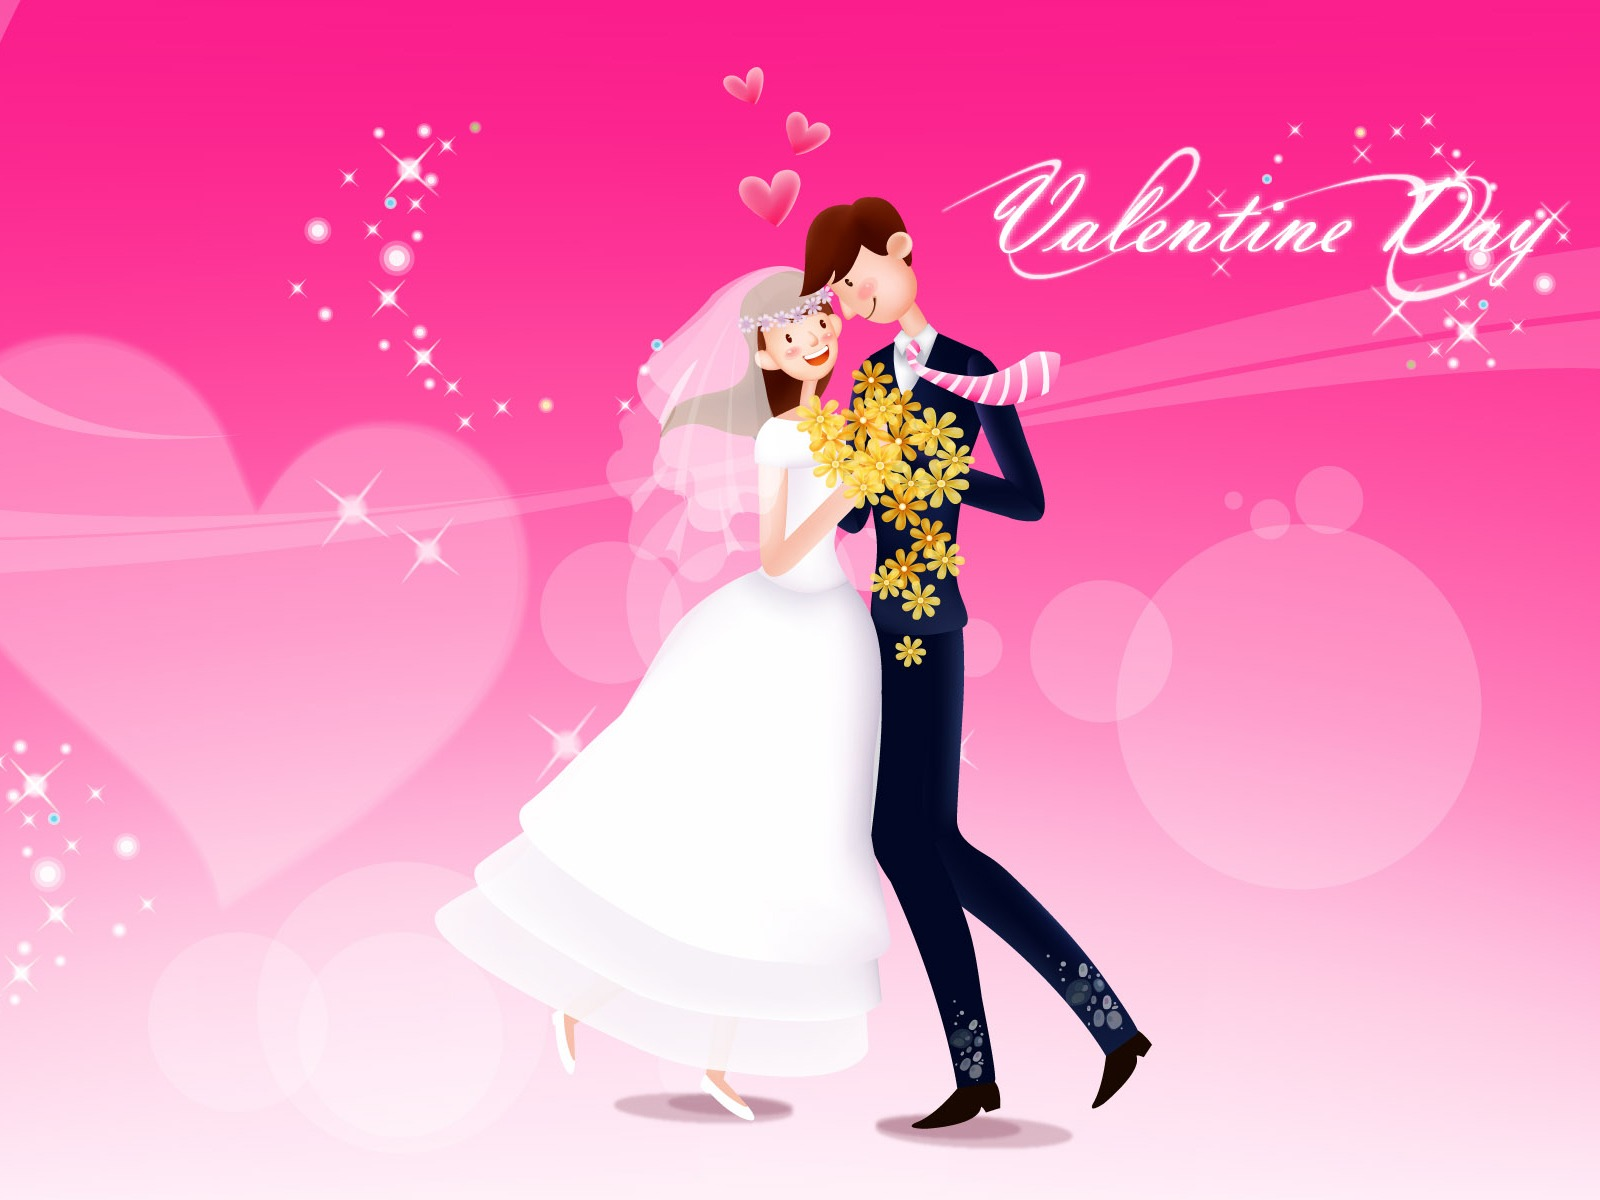 Tamil`zLoveZone: Love Wallpapers